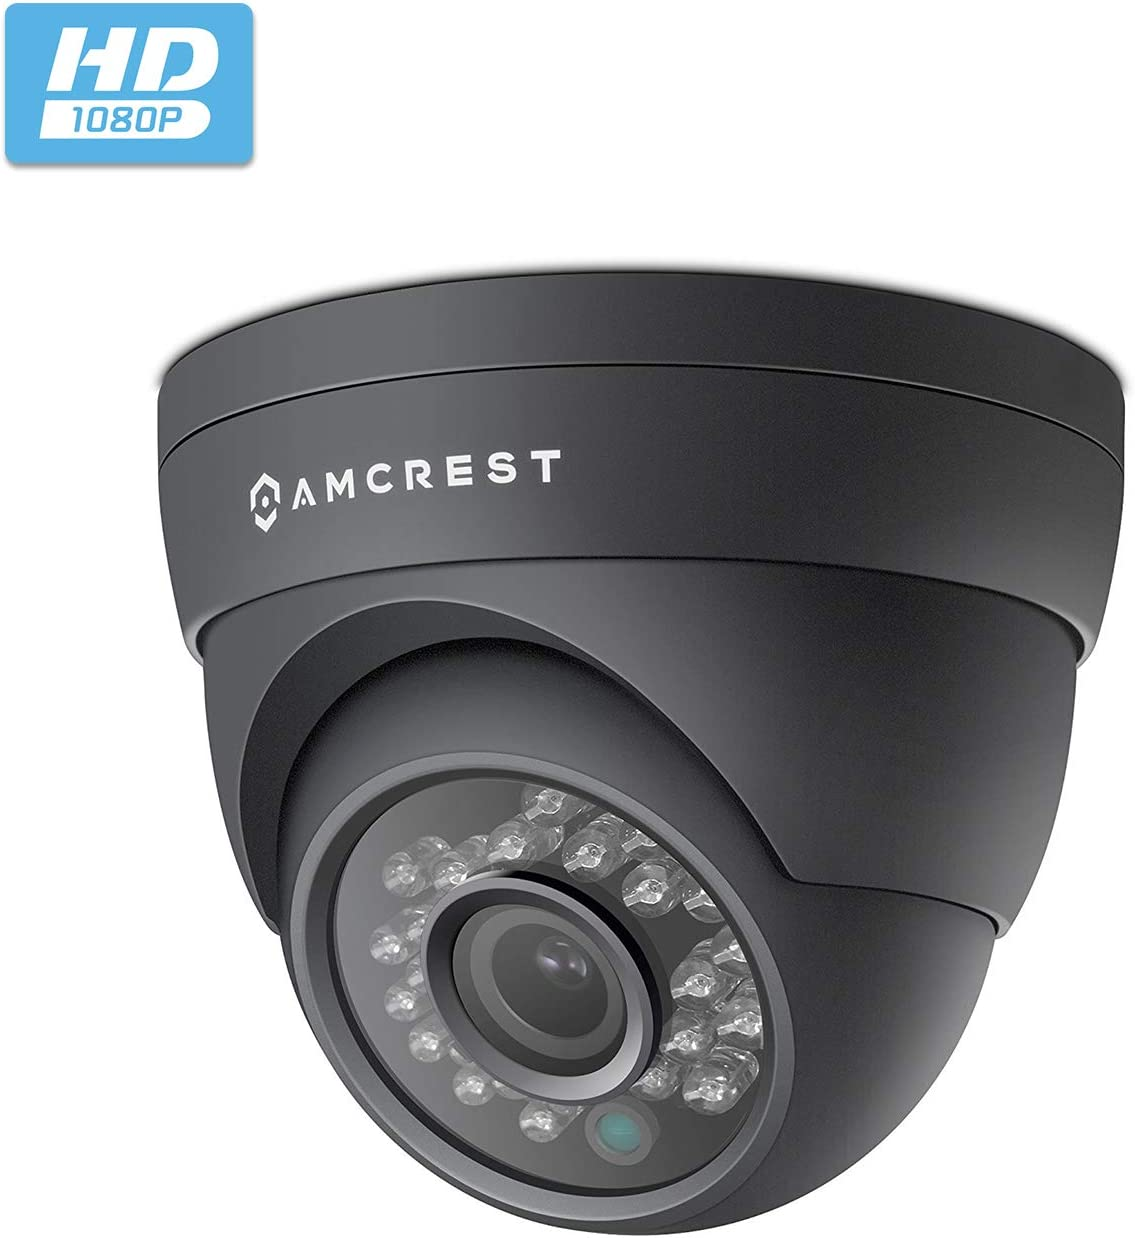 Amcrest Full HD 1080P 1920TVL Dome Outdoor Security Camera Quadbrid 4-in1 HD-CVI TVI AHD Analog , 2MP 1920×1080, 65ft Night Vision, Metal Housing, 2.8mm Lens 95 Viewing Angle, Black AF-2MDT-28B